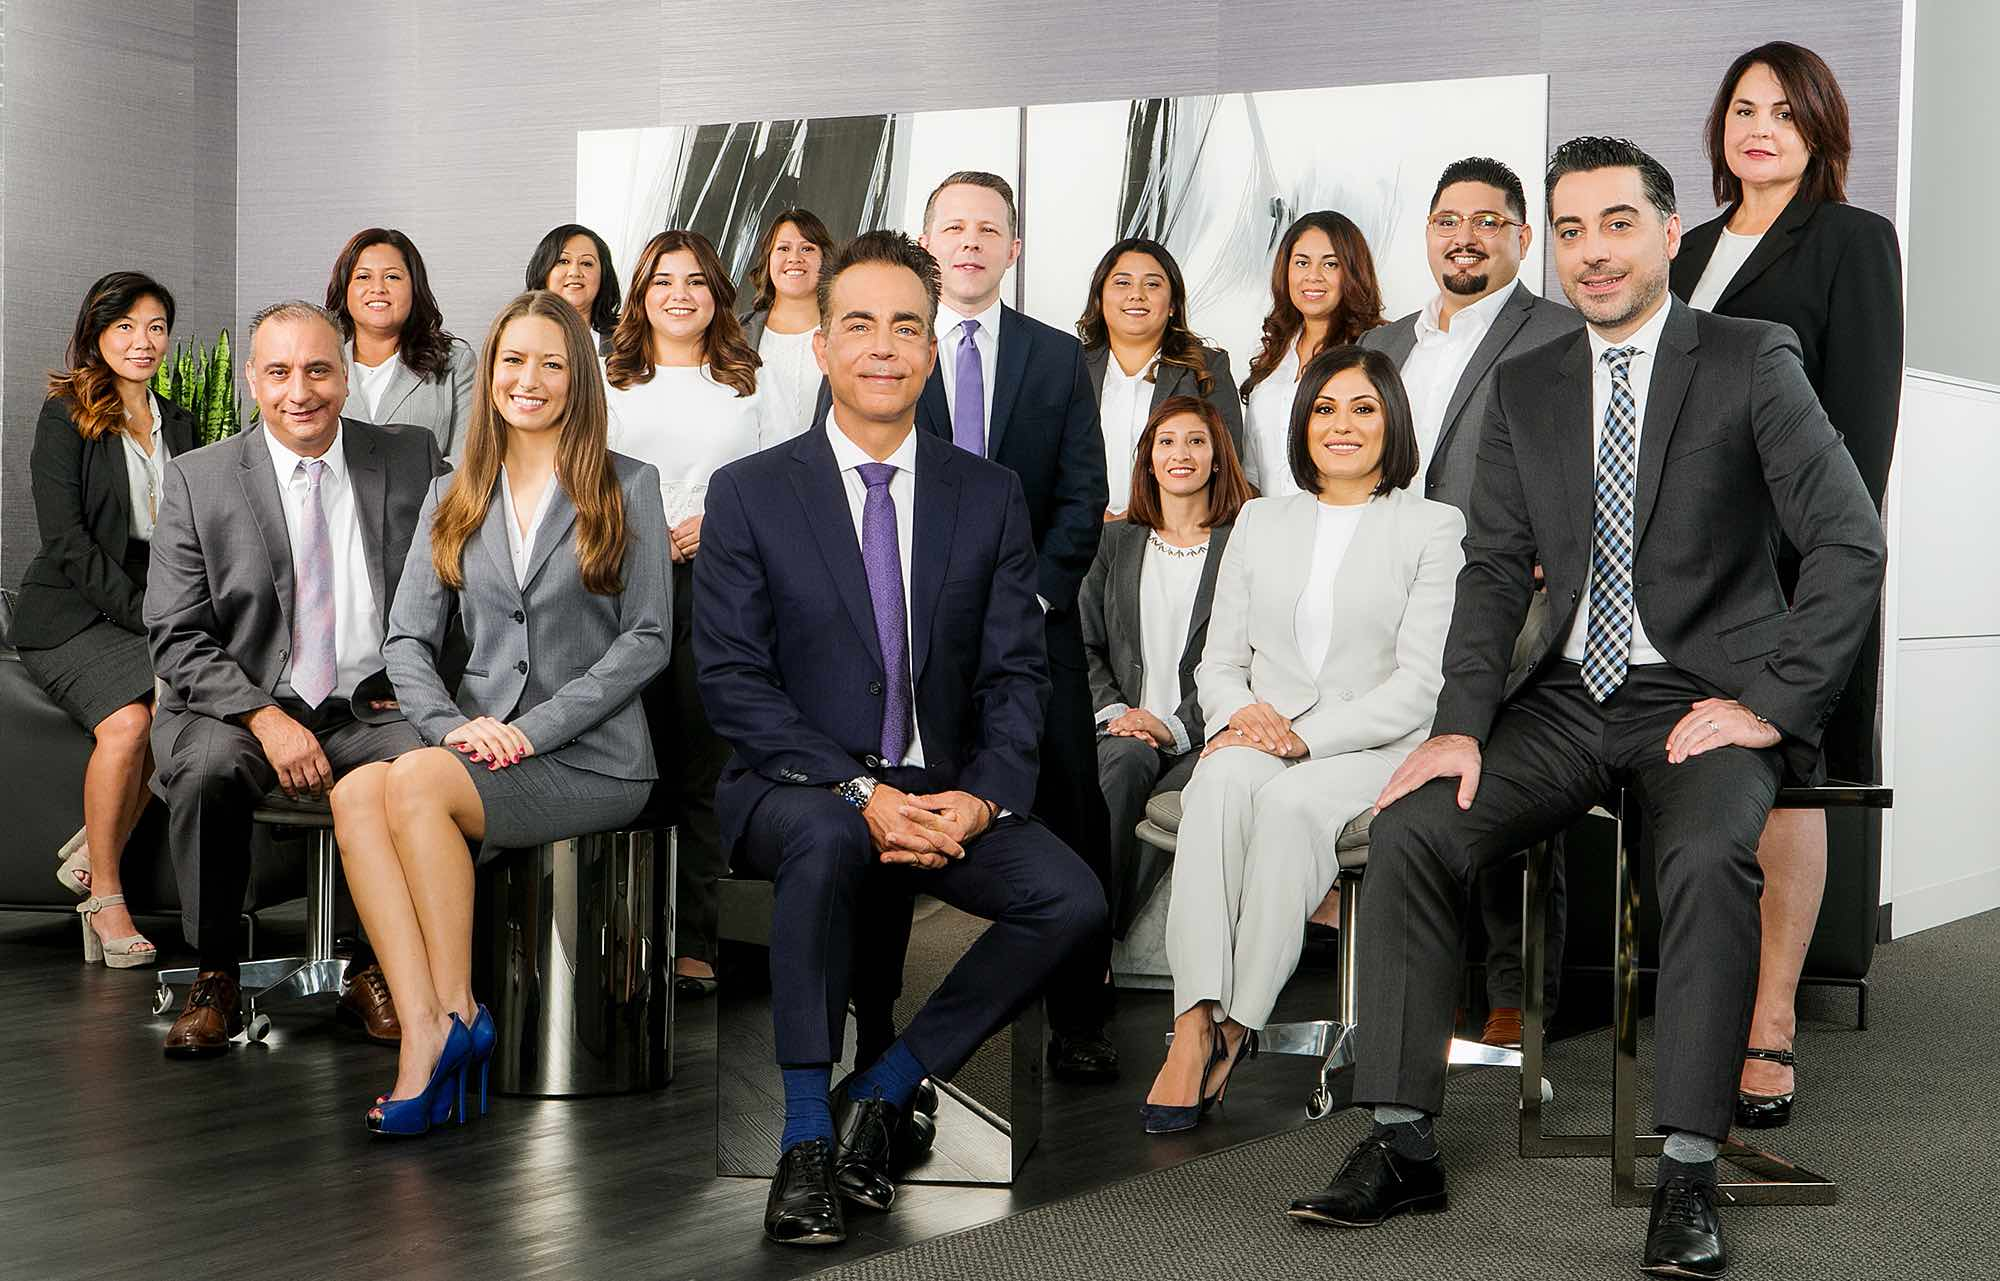 The Homampour Law Firm - Creative, Aggressive Litigators Who Love the Profession and Art of Law